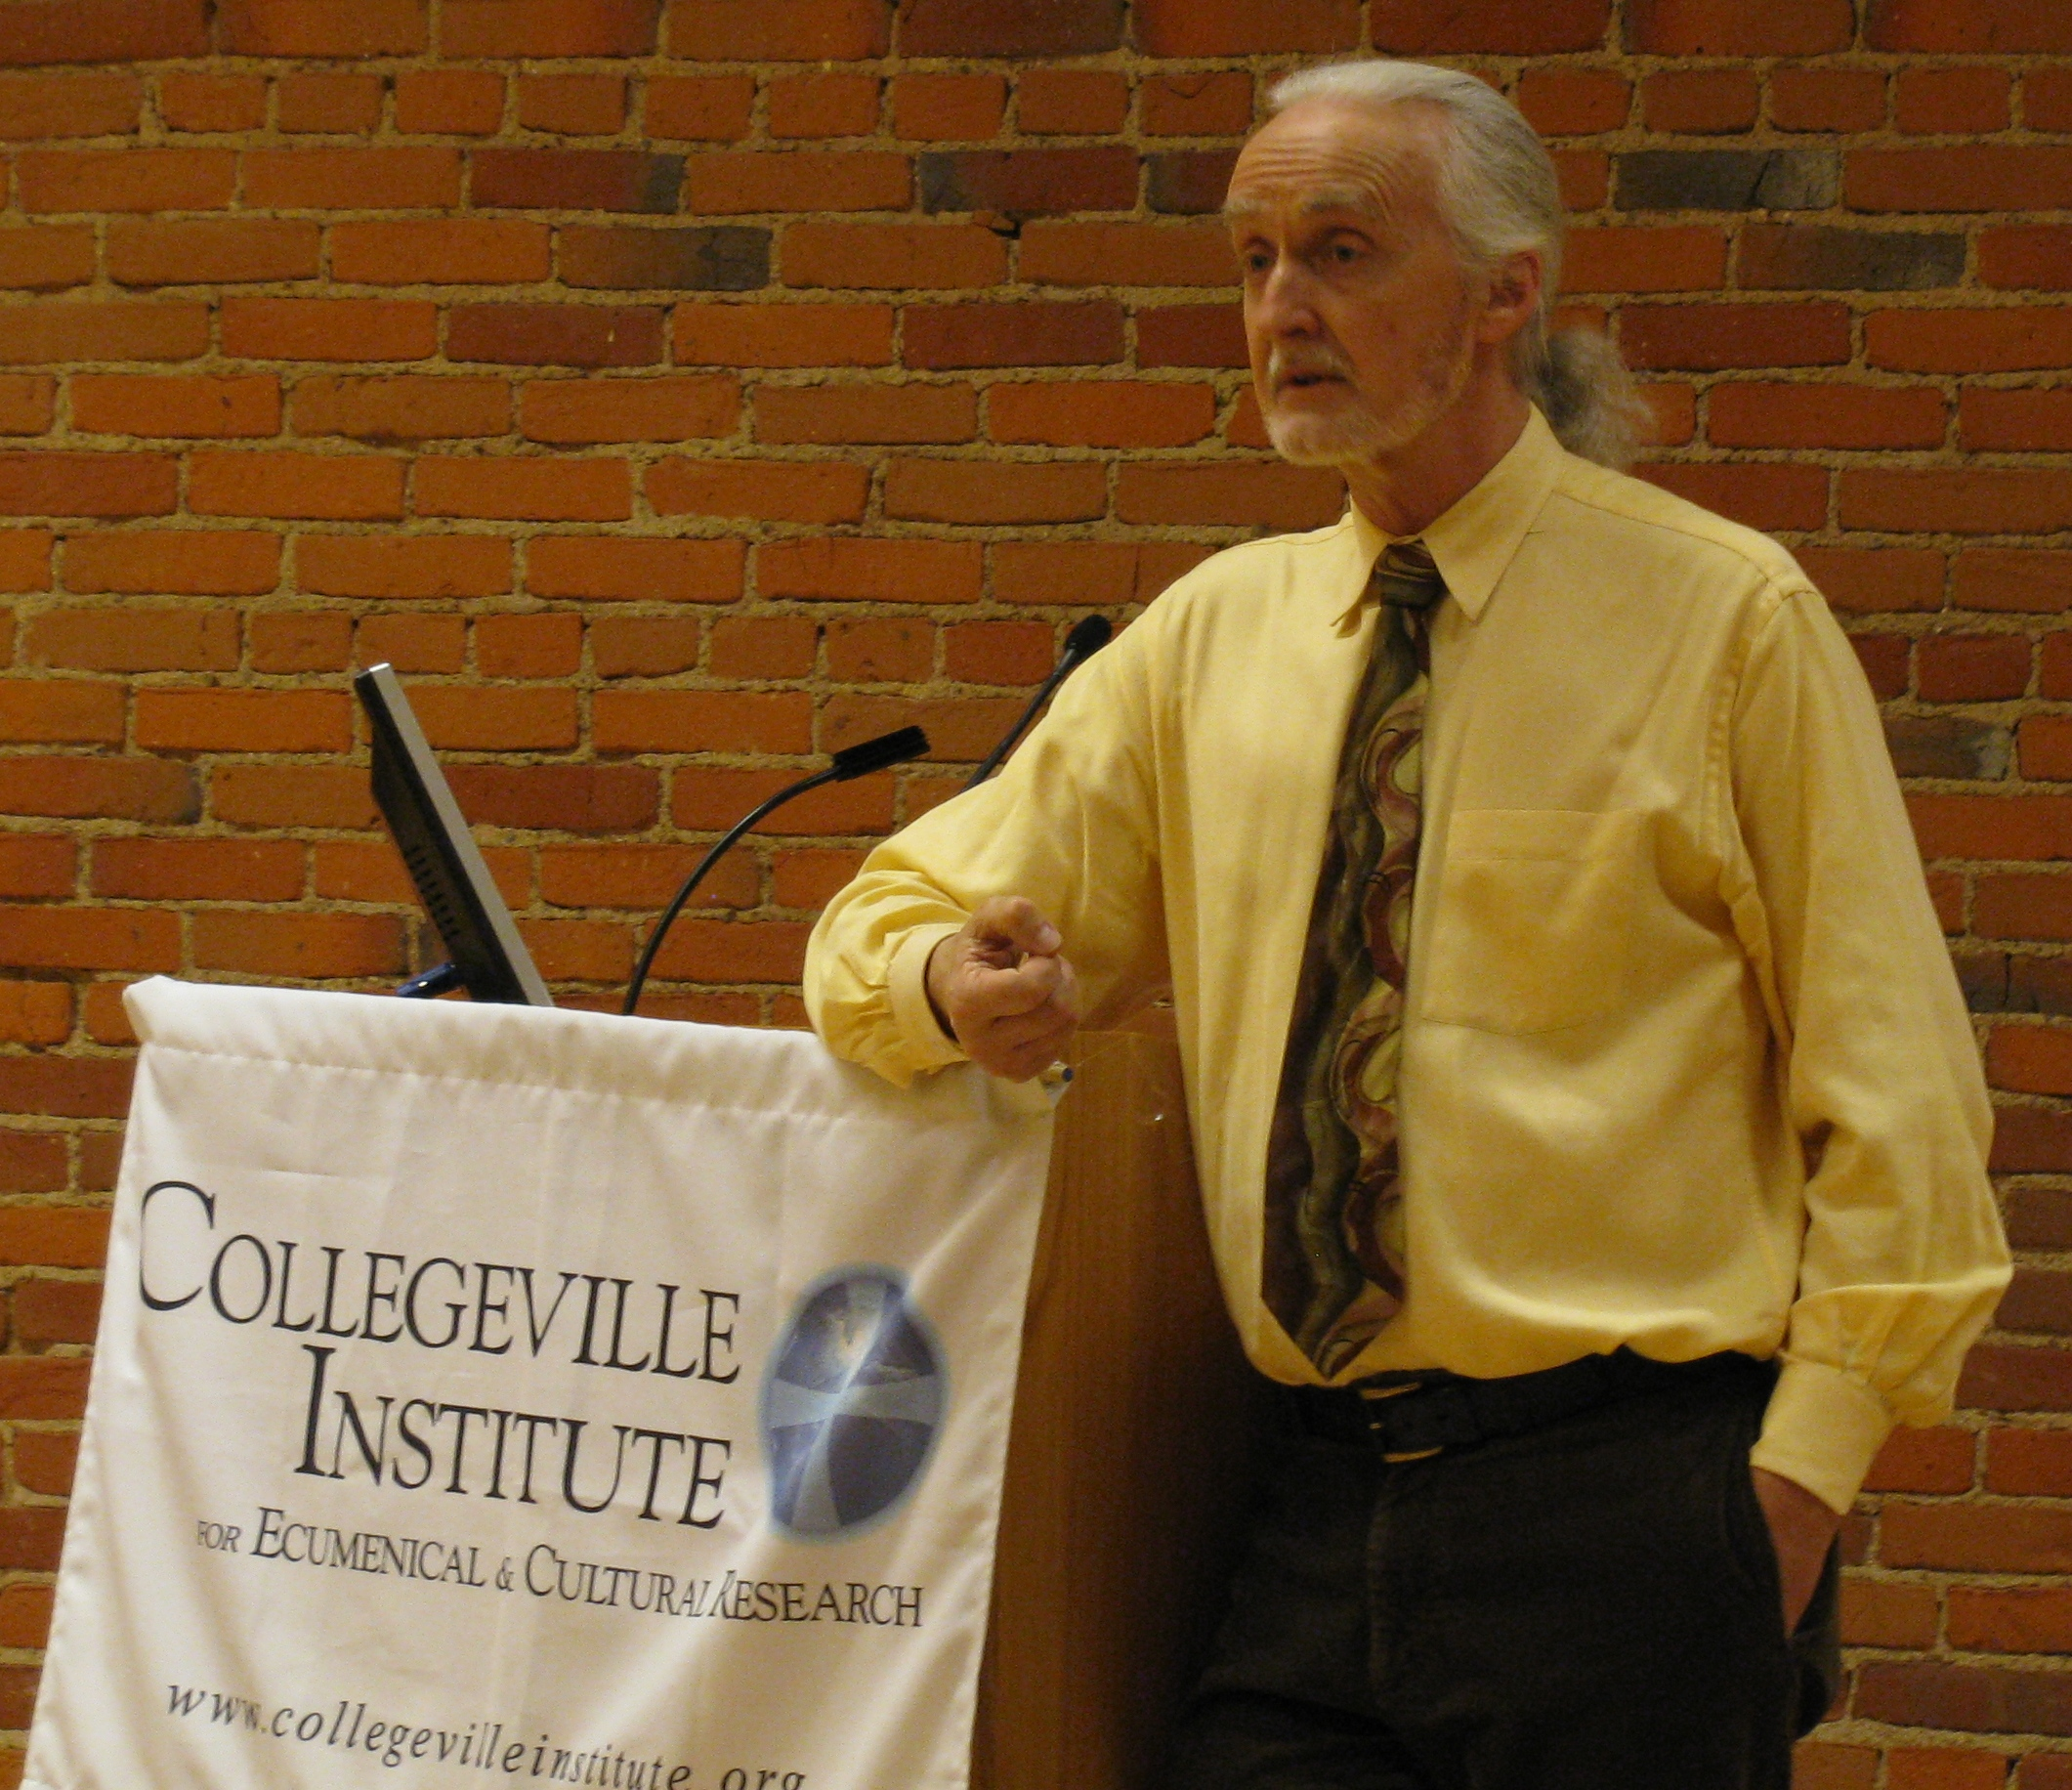 Collegeville lecture 3